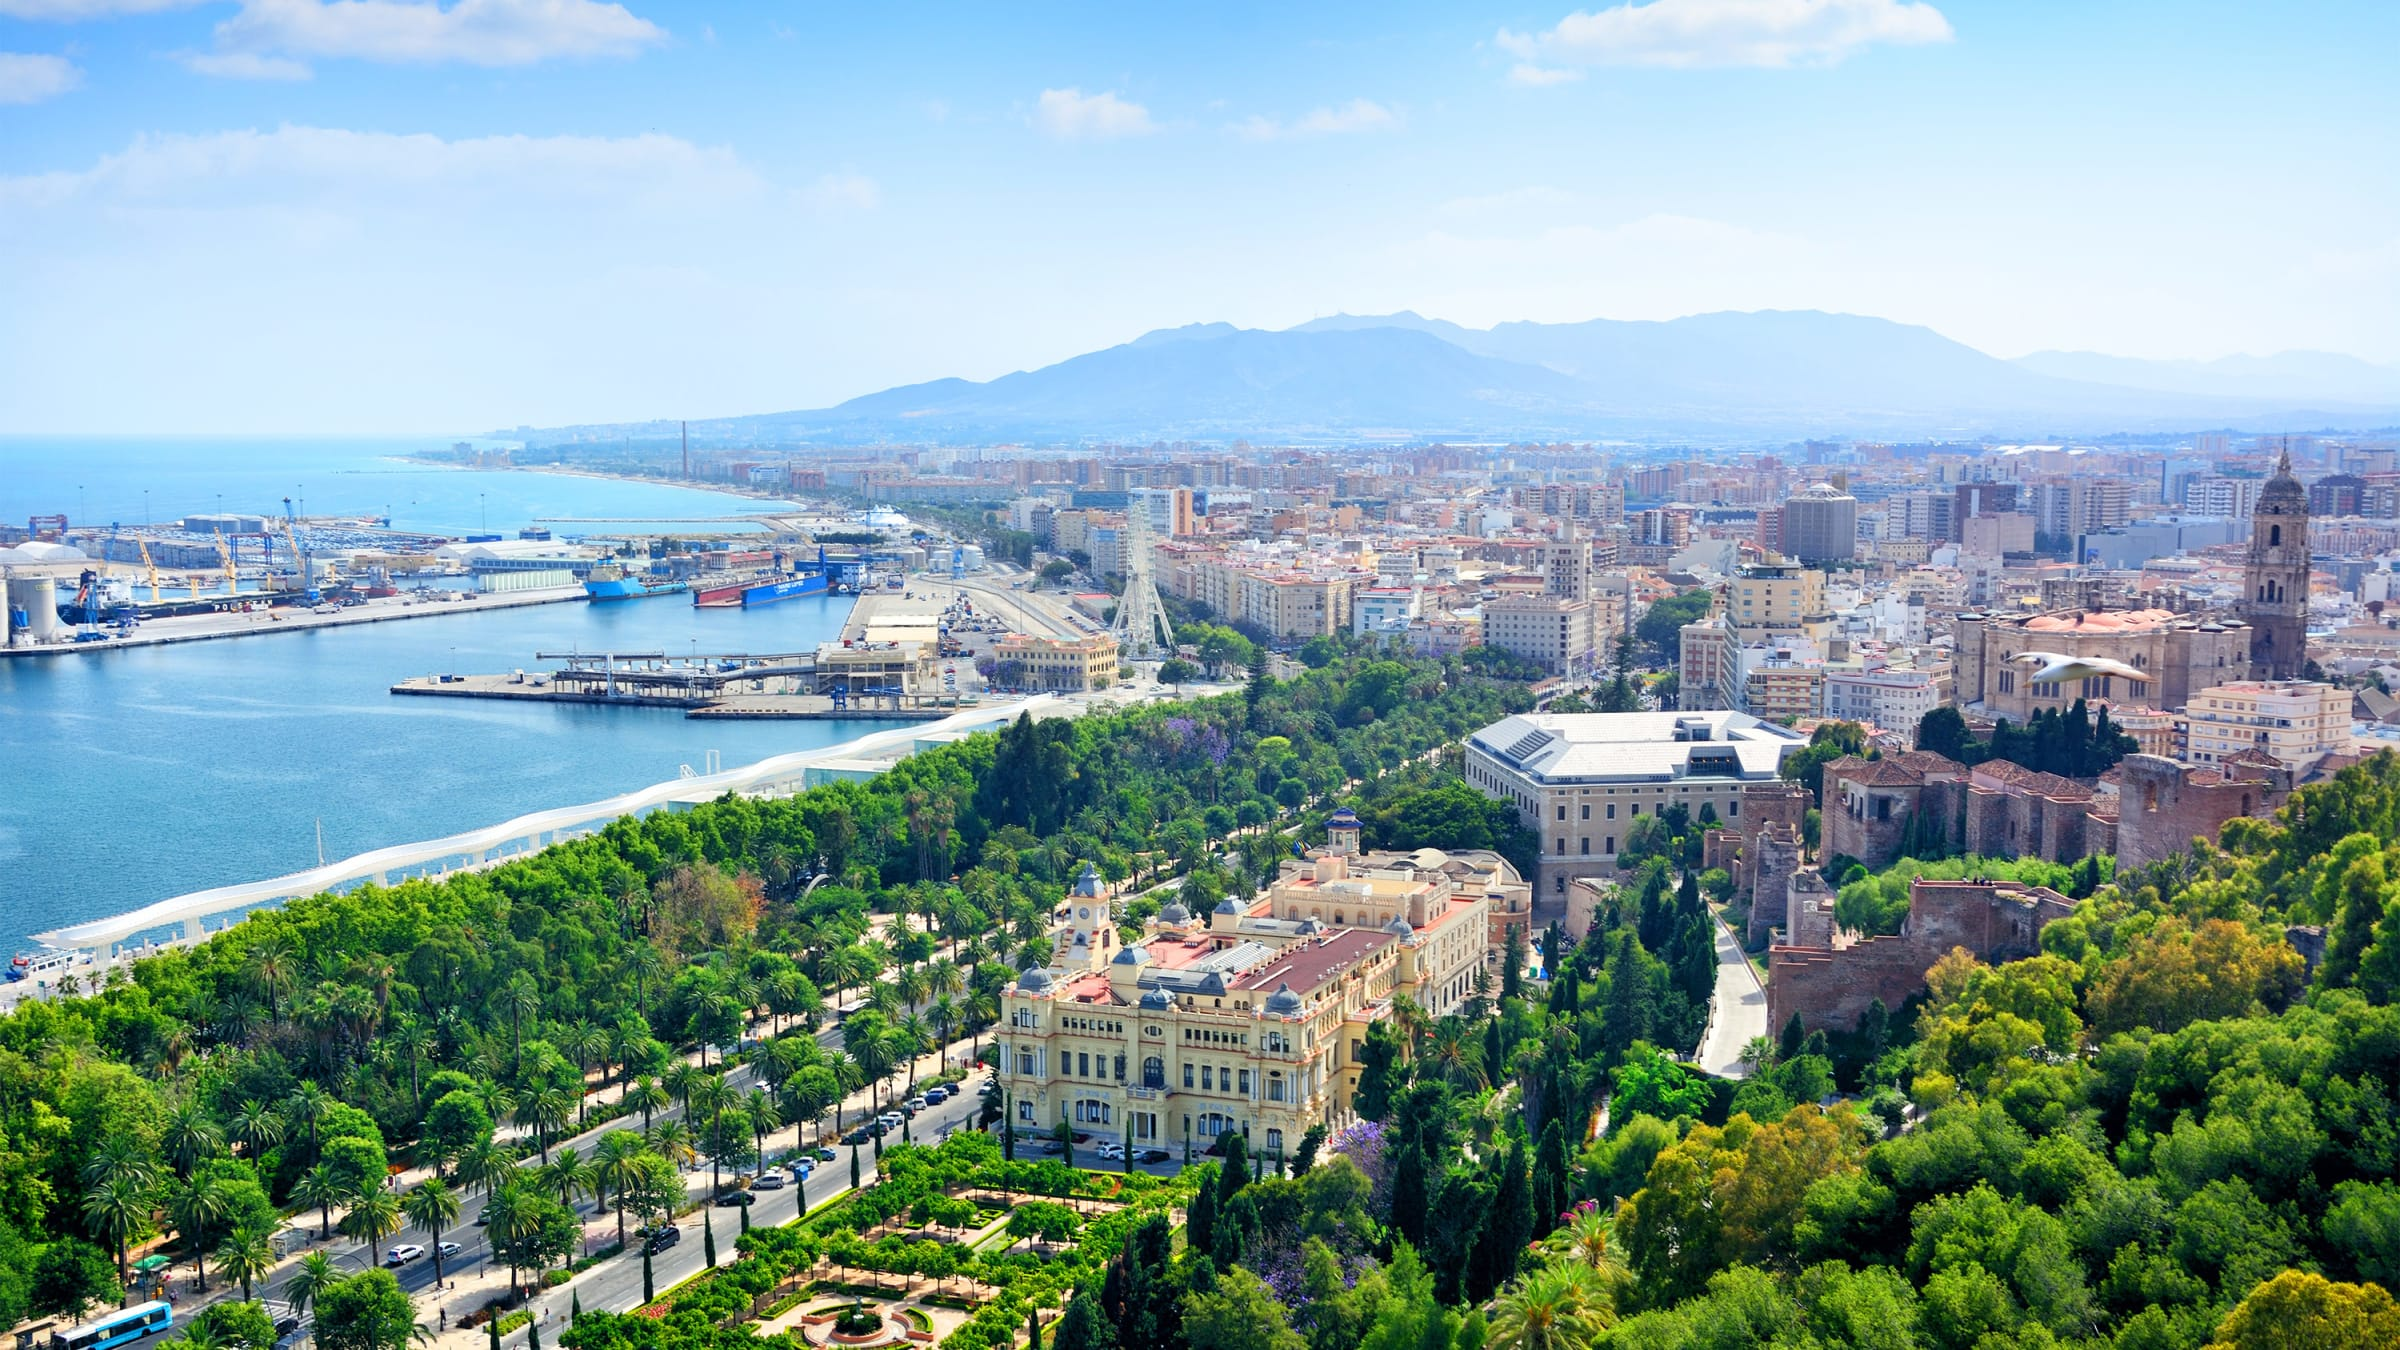 Malaga, the New Must-See City in Southern Spain